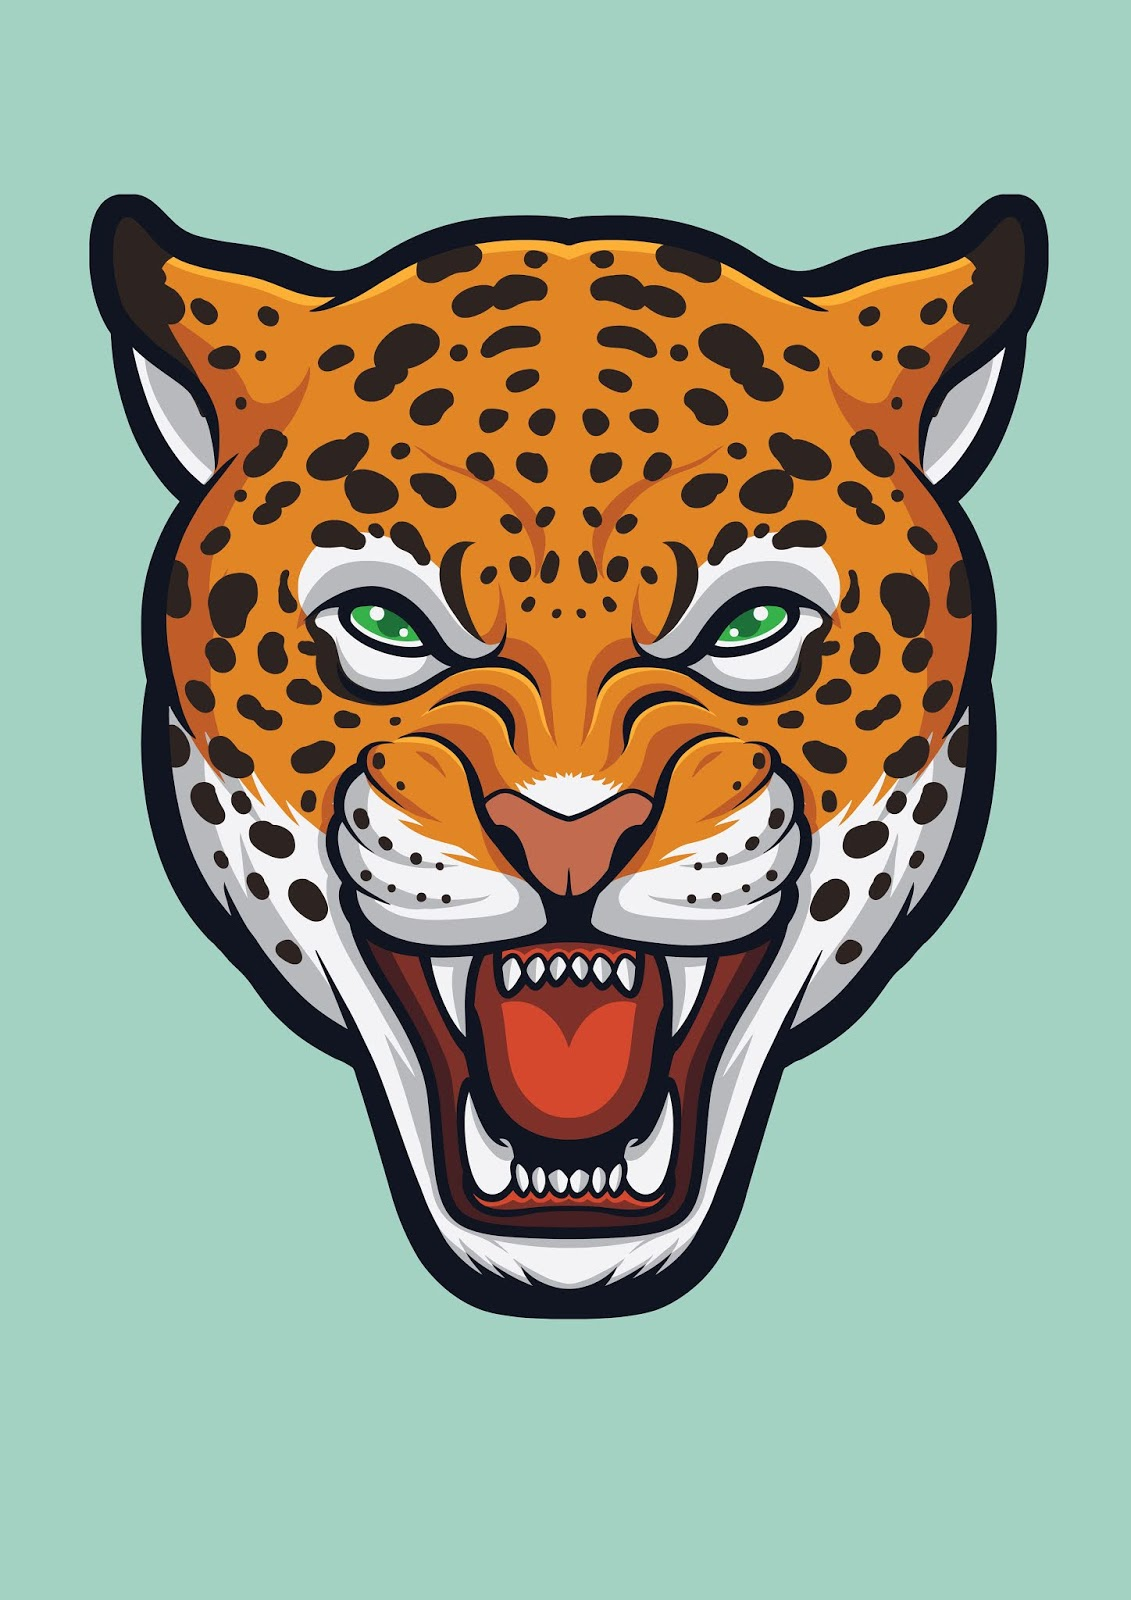 Angry Jaguar Face Panthera Onca Free Download Vector CDR, AI, EPS and PNG Formats